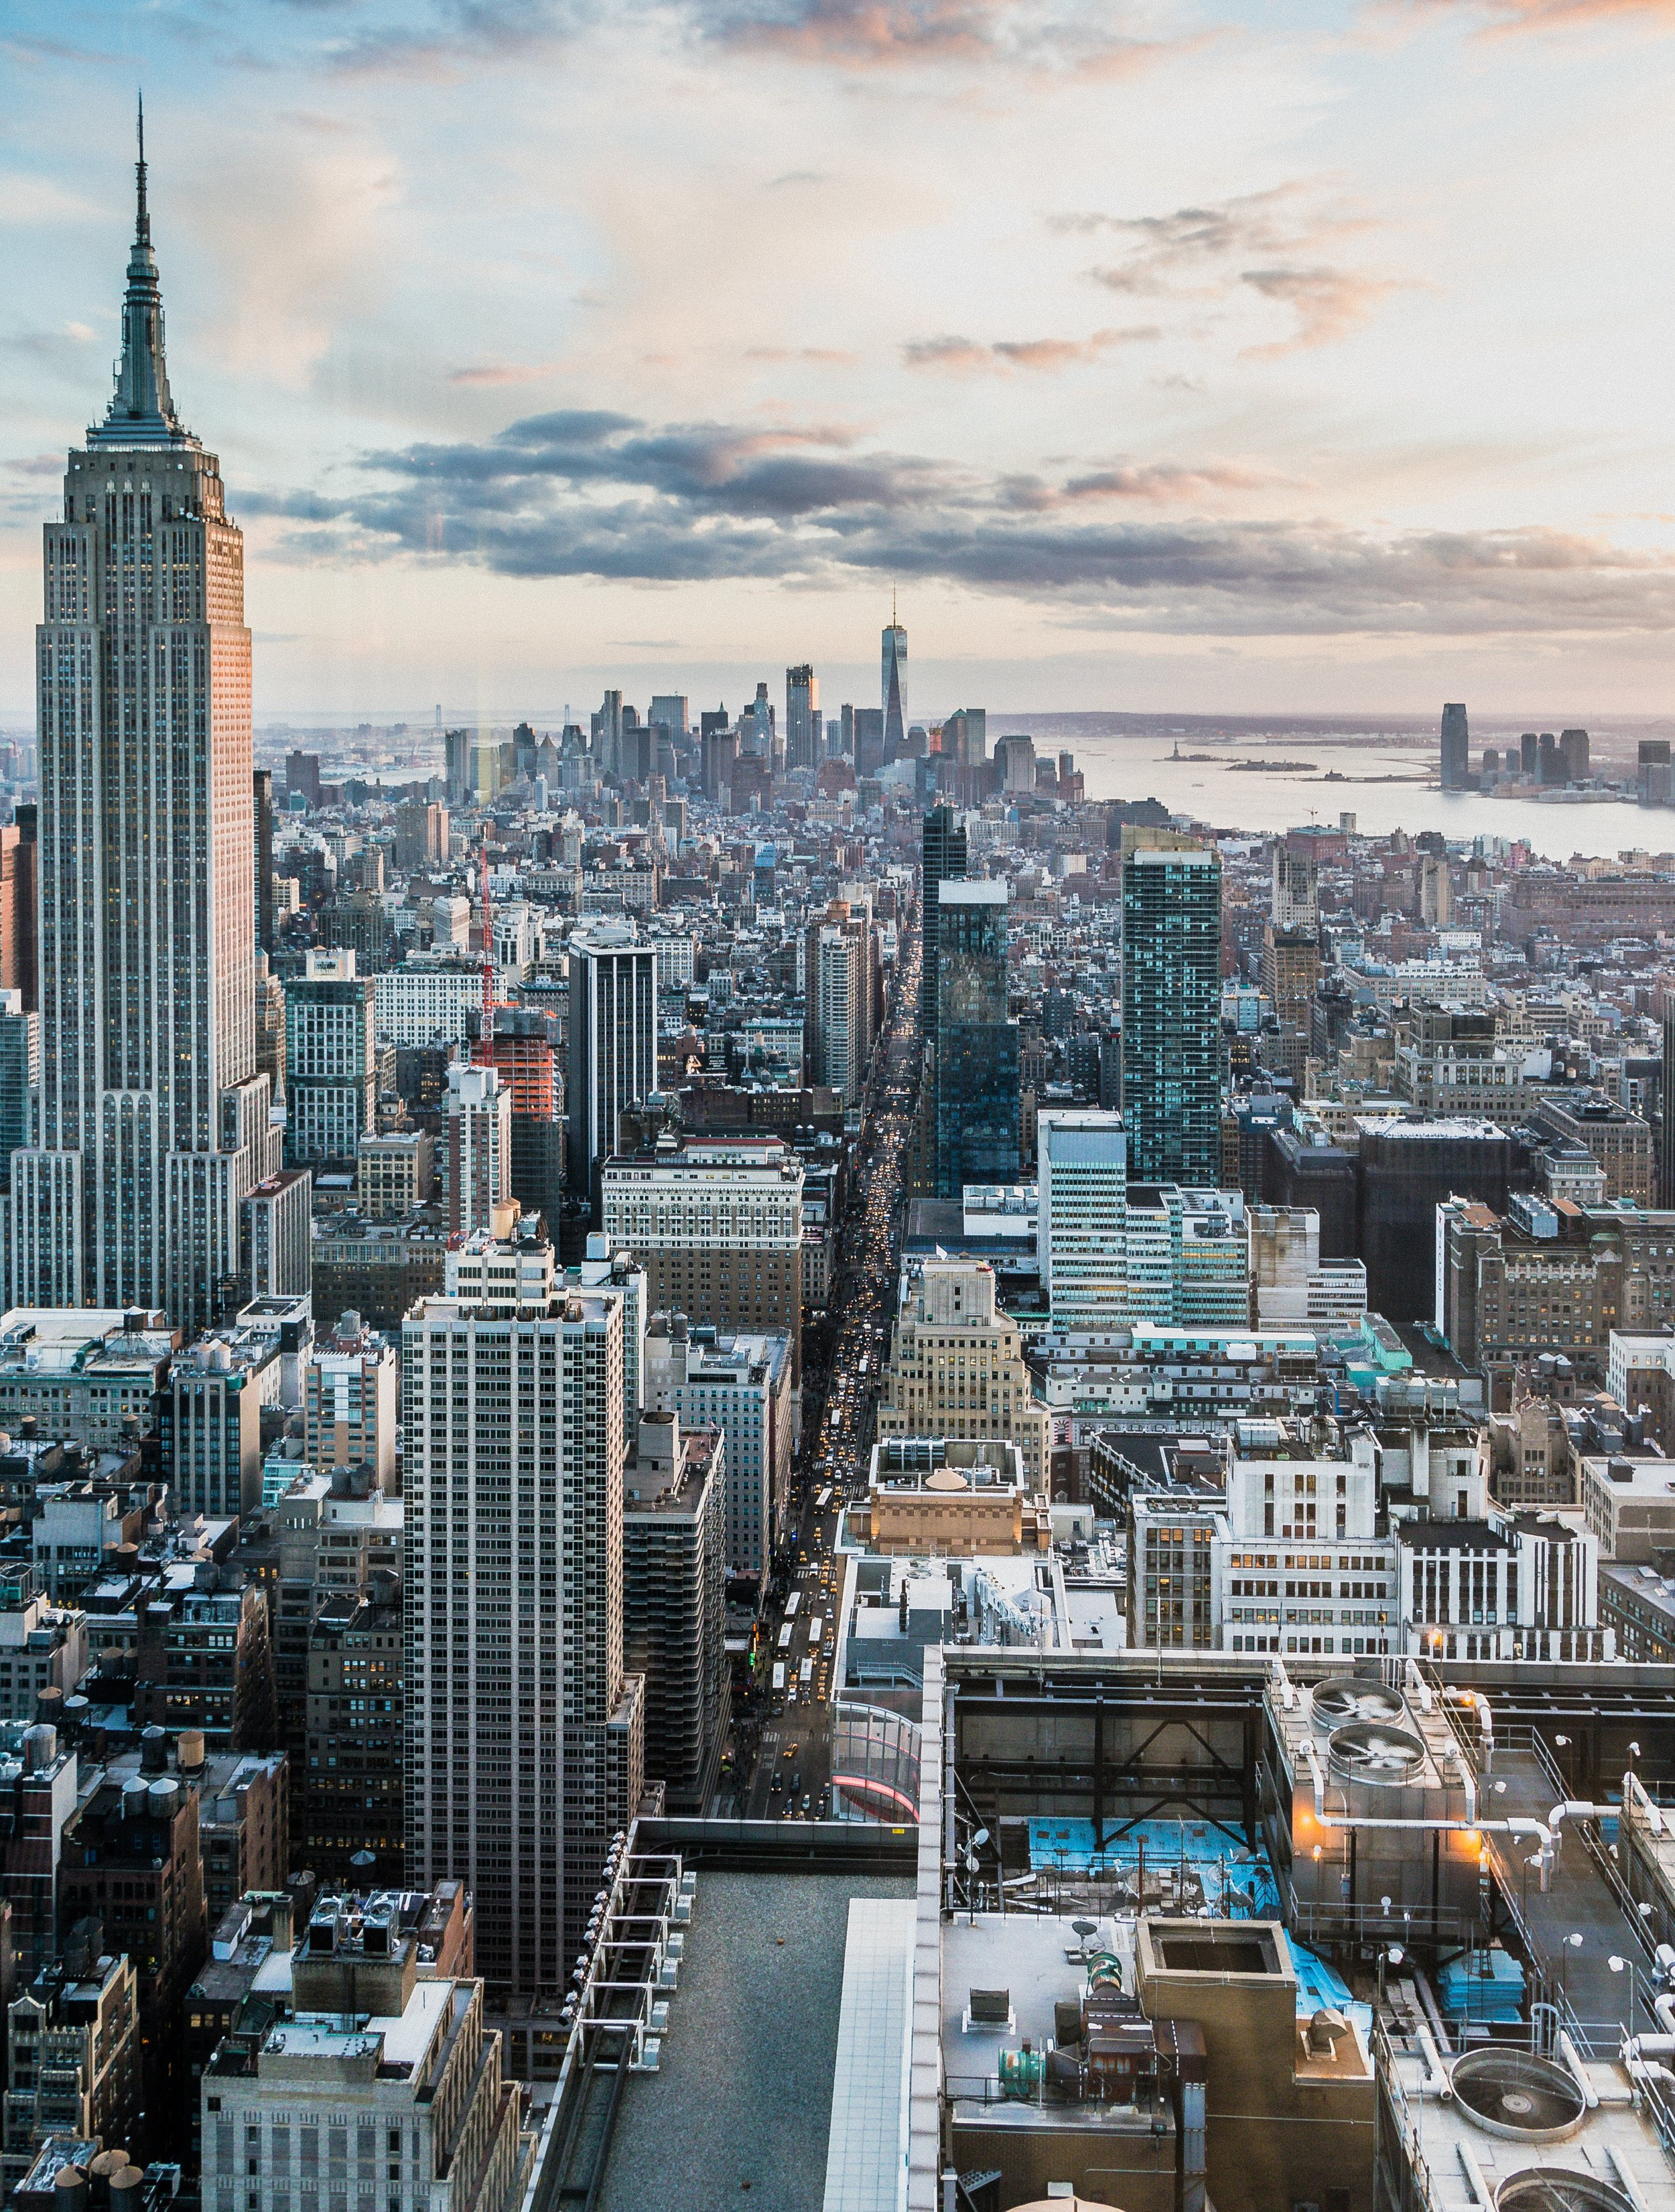 Get ready to reenact your favorite scenes in our bustling city! - We've compiled the most epic films that were shot in all 5 boroughs of New York City